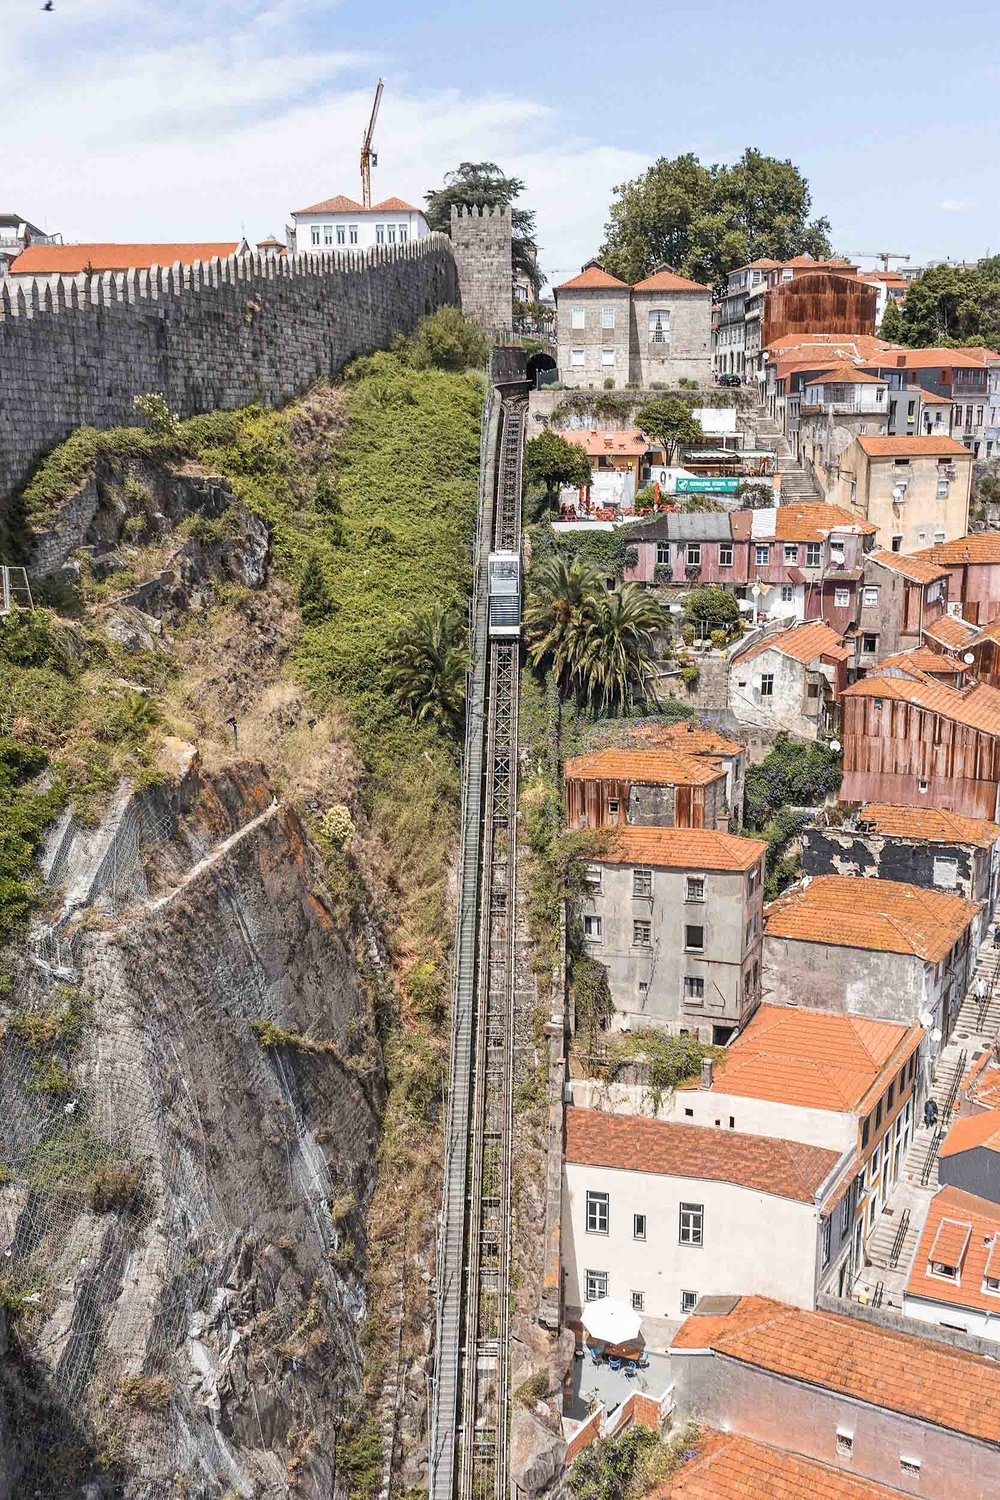 Planning a Portugal road trip? Here's the perfect route to take!